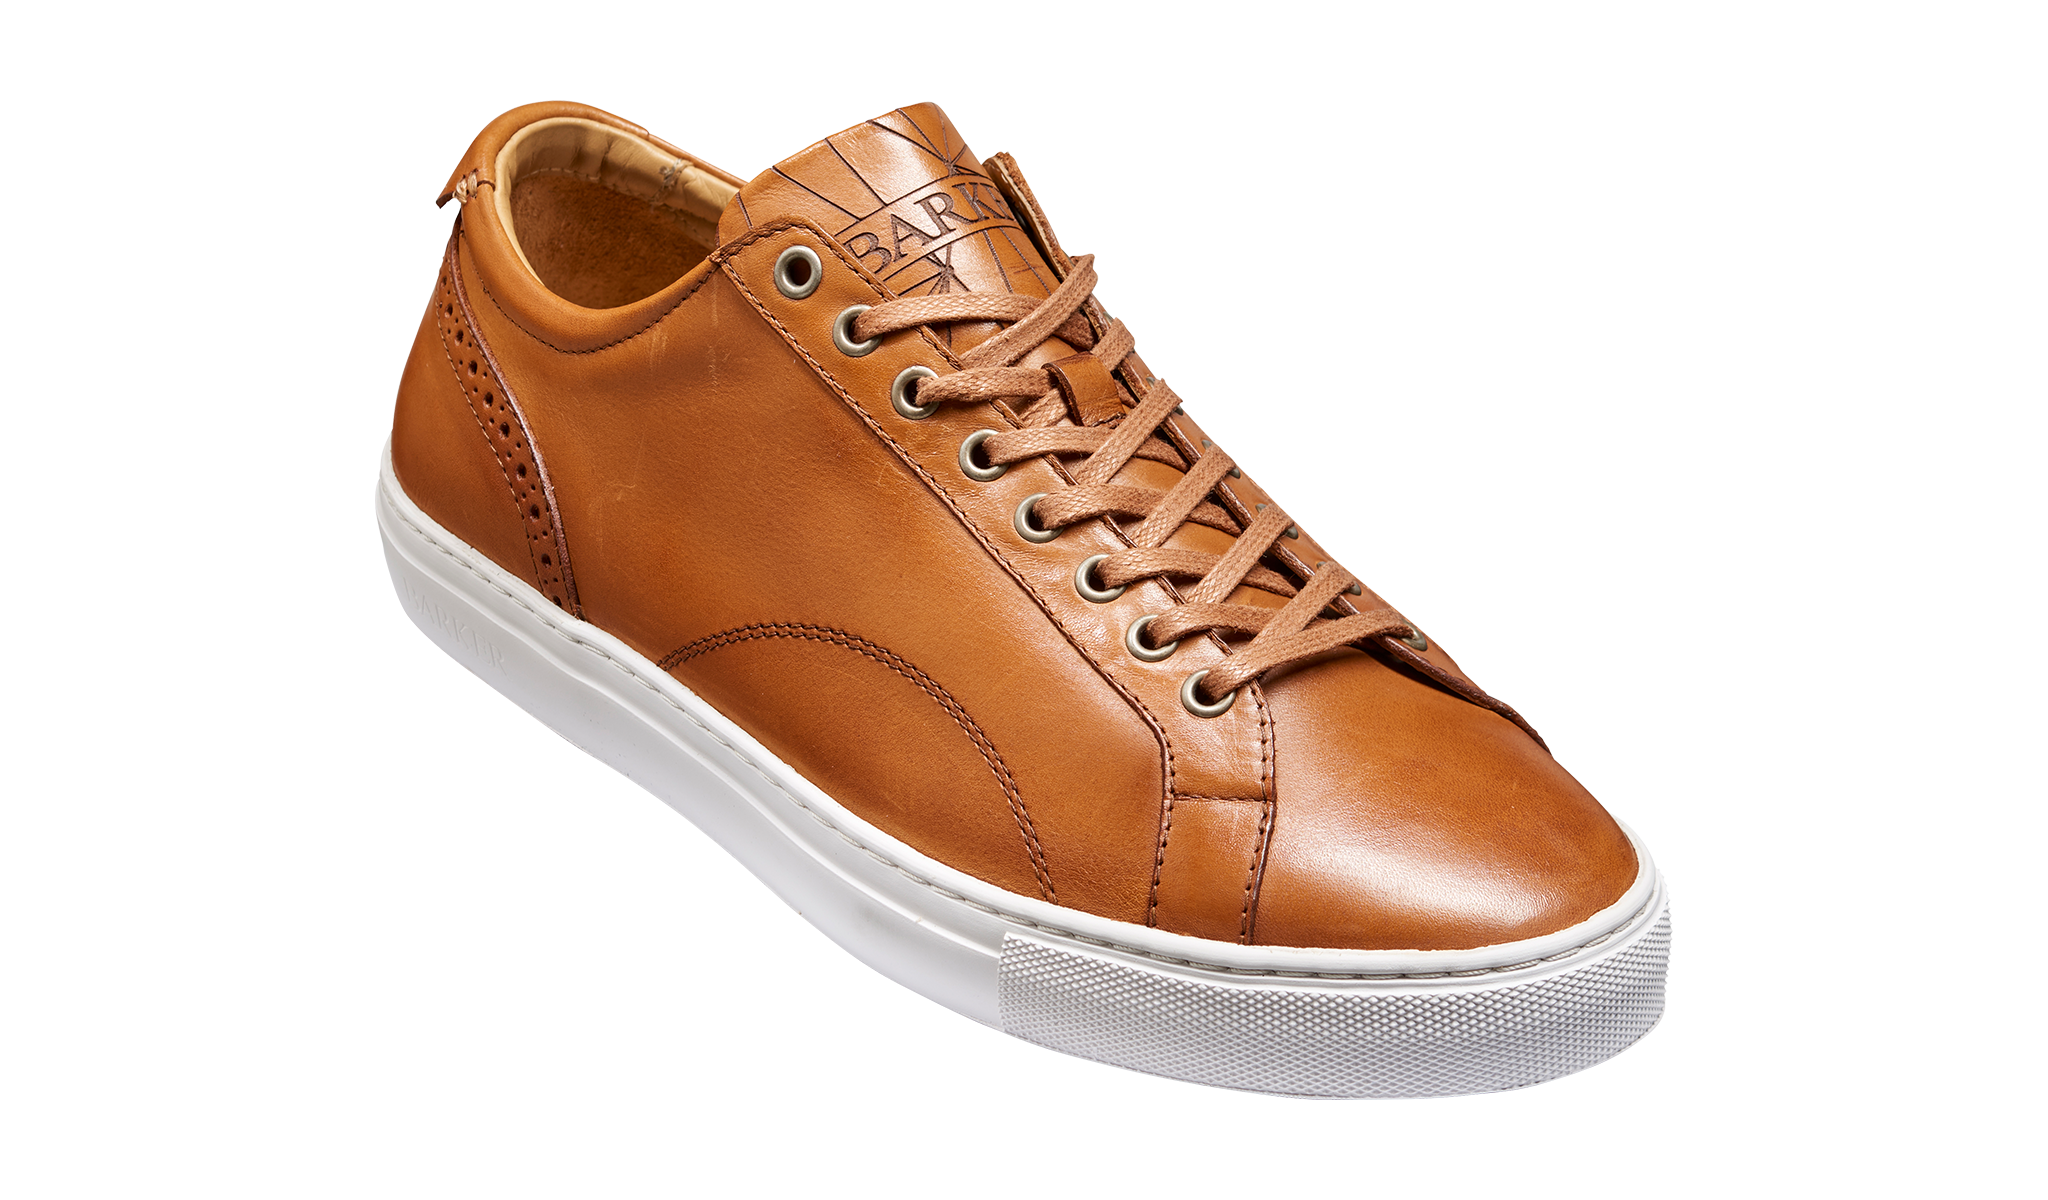 Mens brown sneaker by Barker